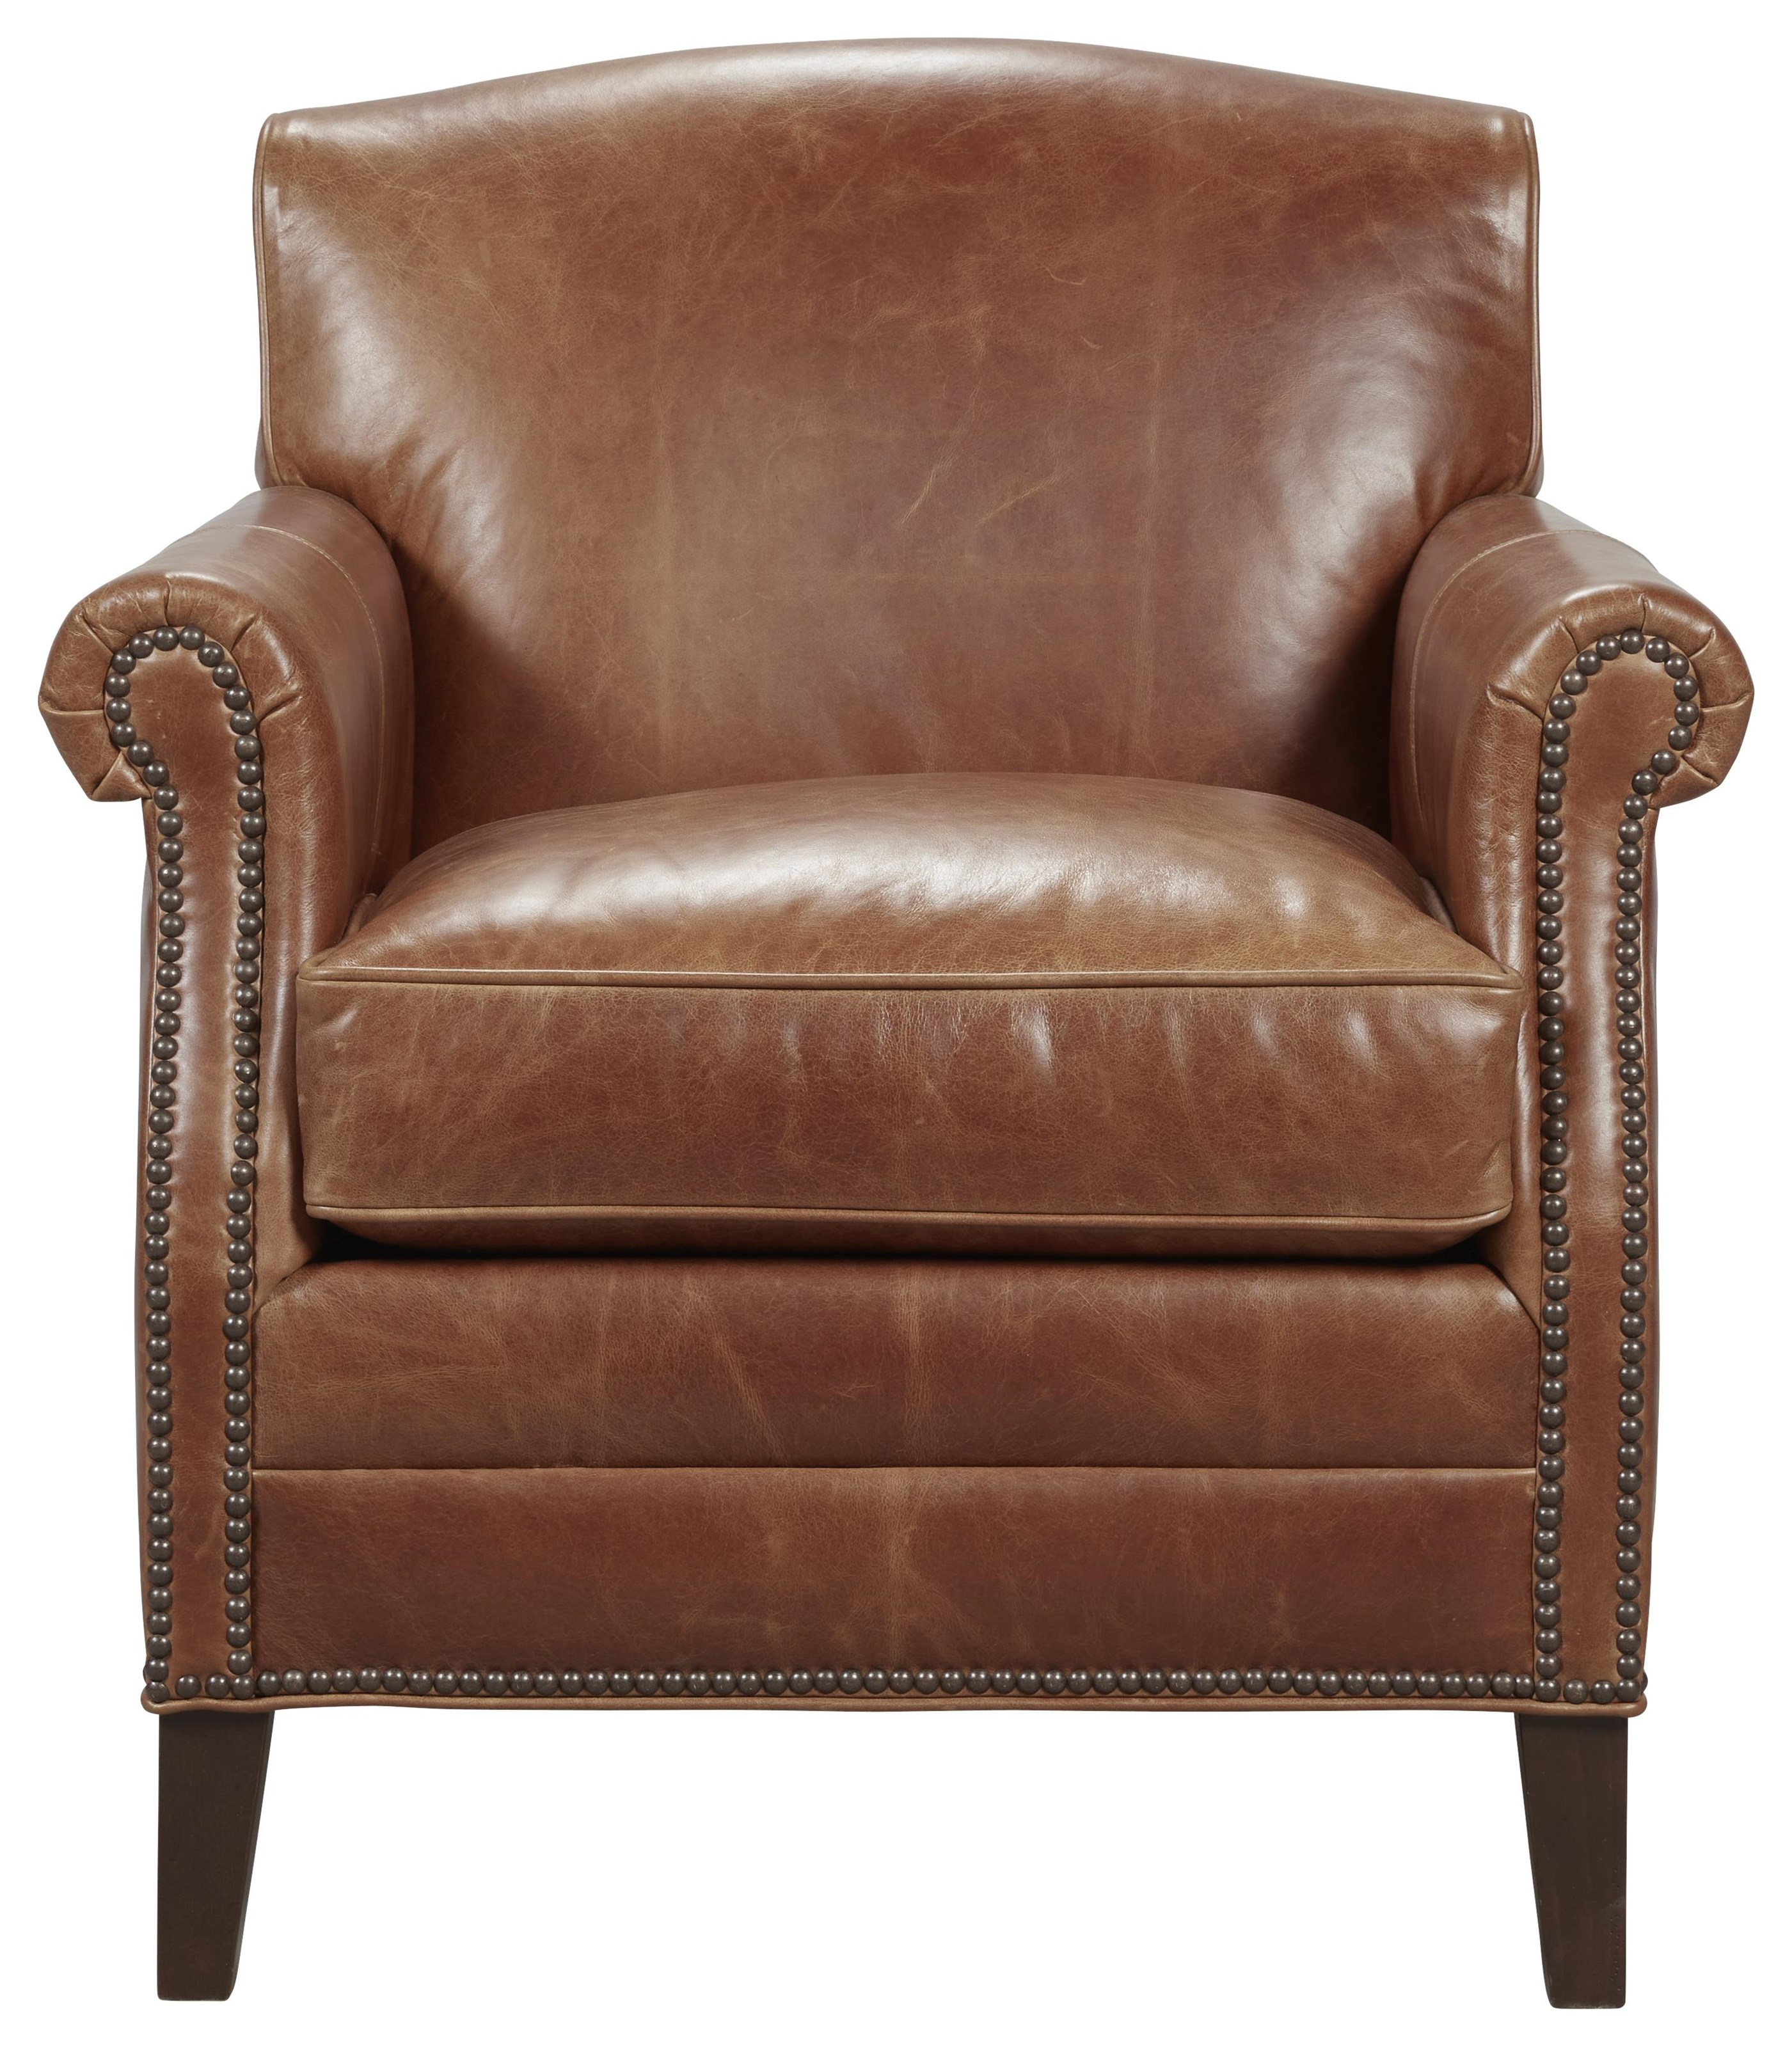 Chairs Dresden Lounge Chair by Fairfield at Belfort Furniture